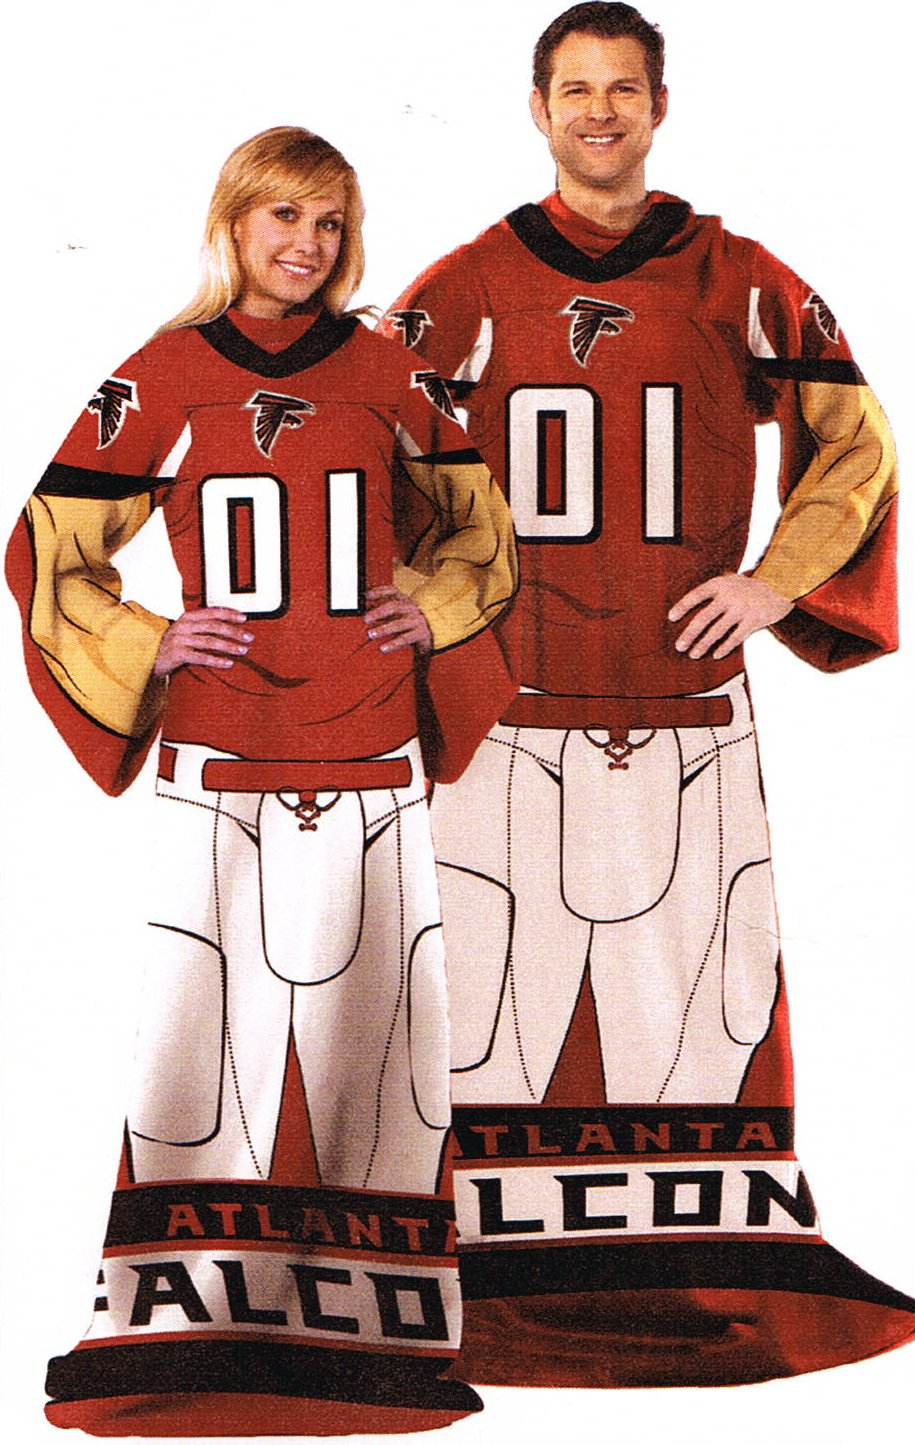 NFL Football Atlanta Falcons Comfy Throw ~ Blanket with Sleeves Large Unisex Adult Size